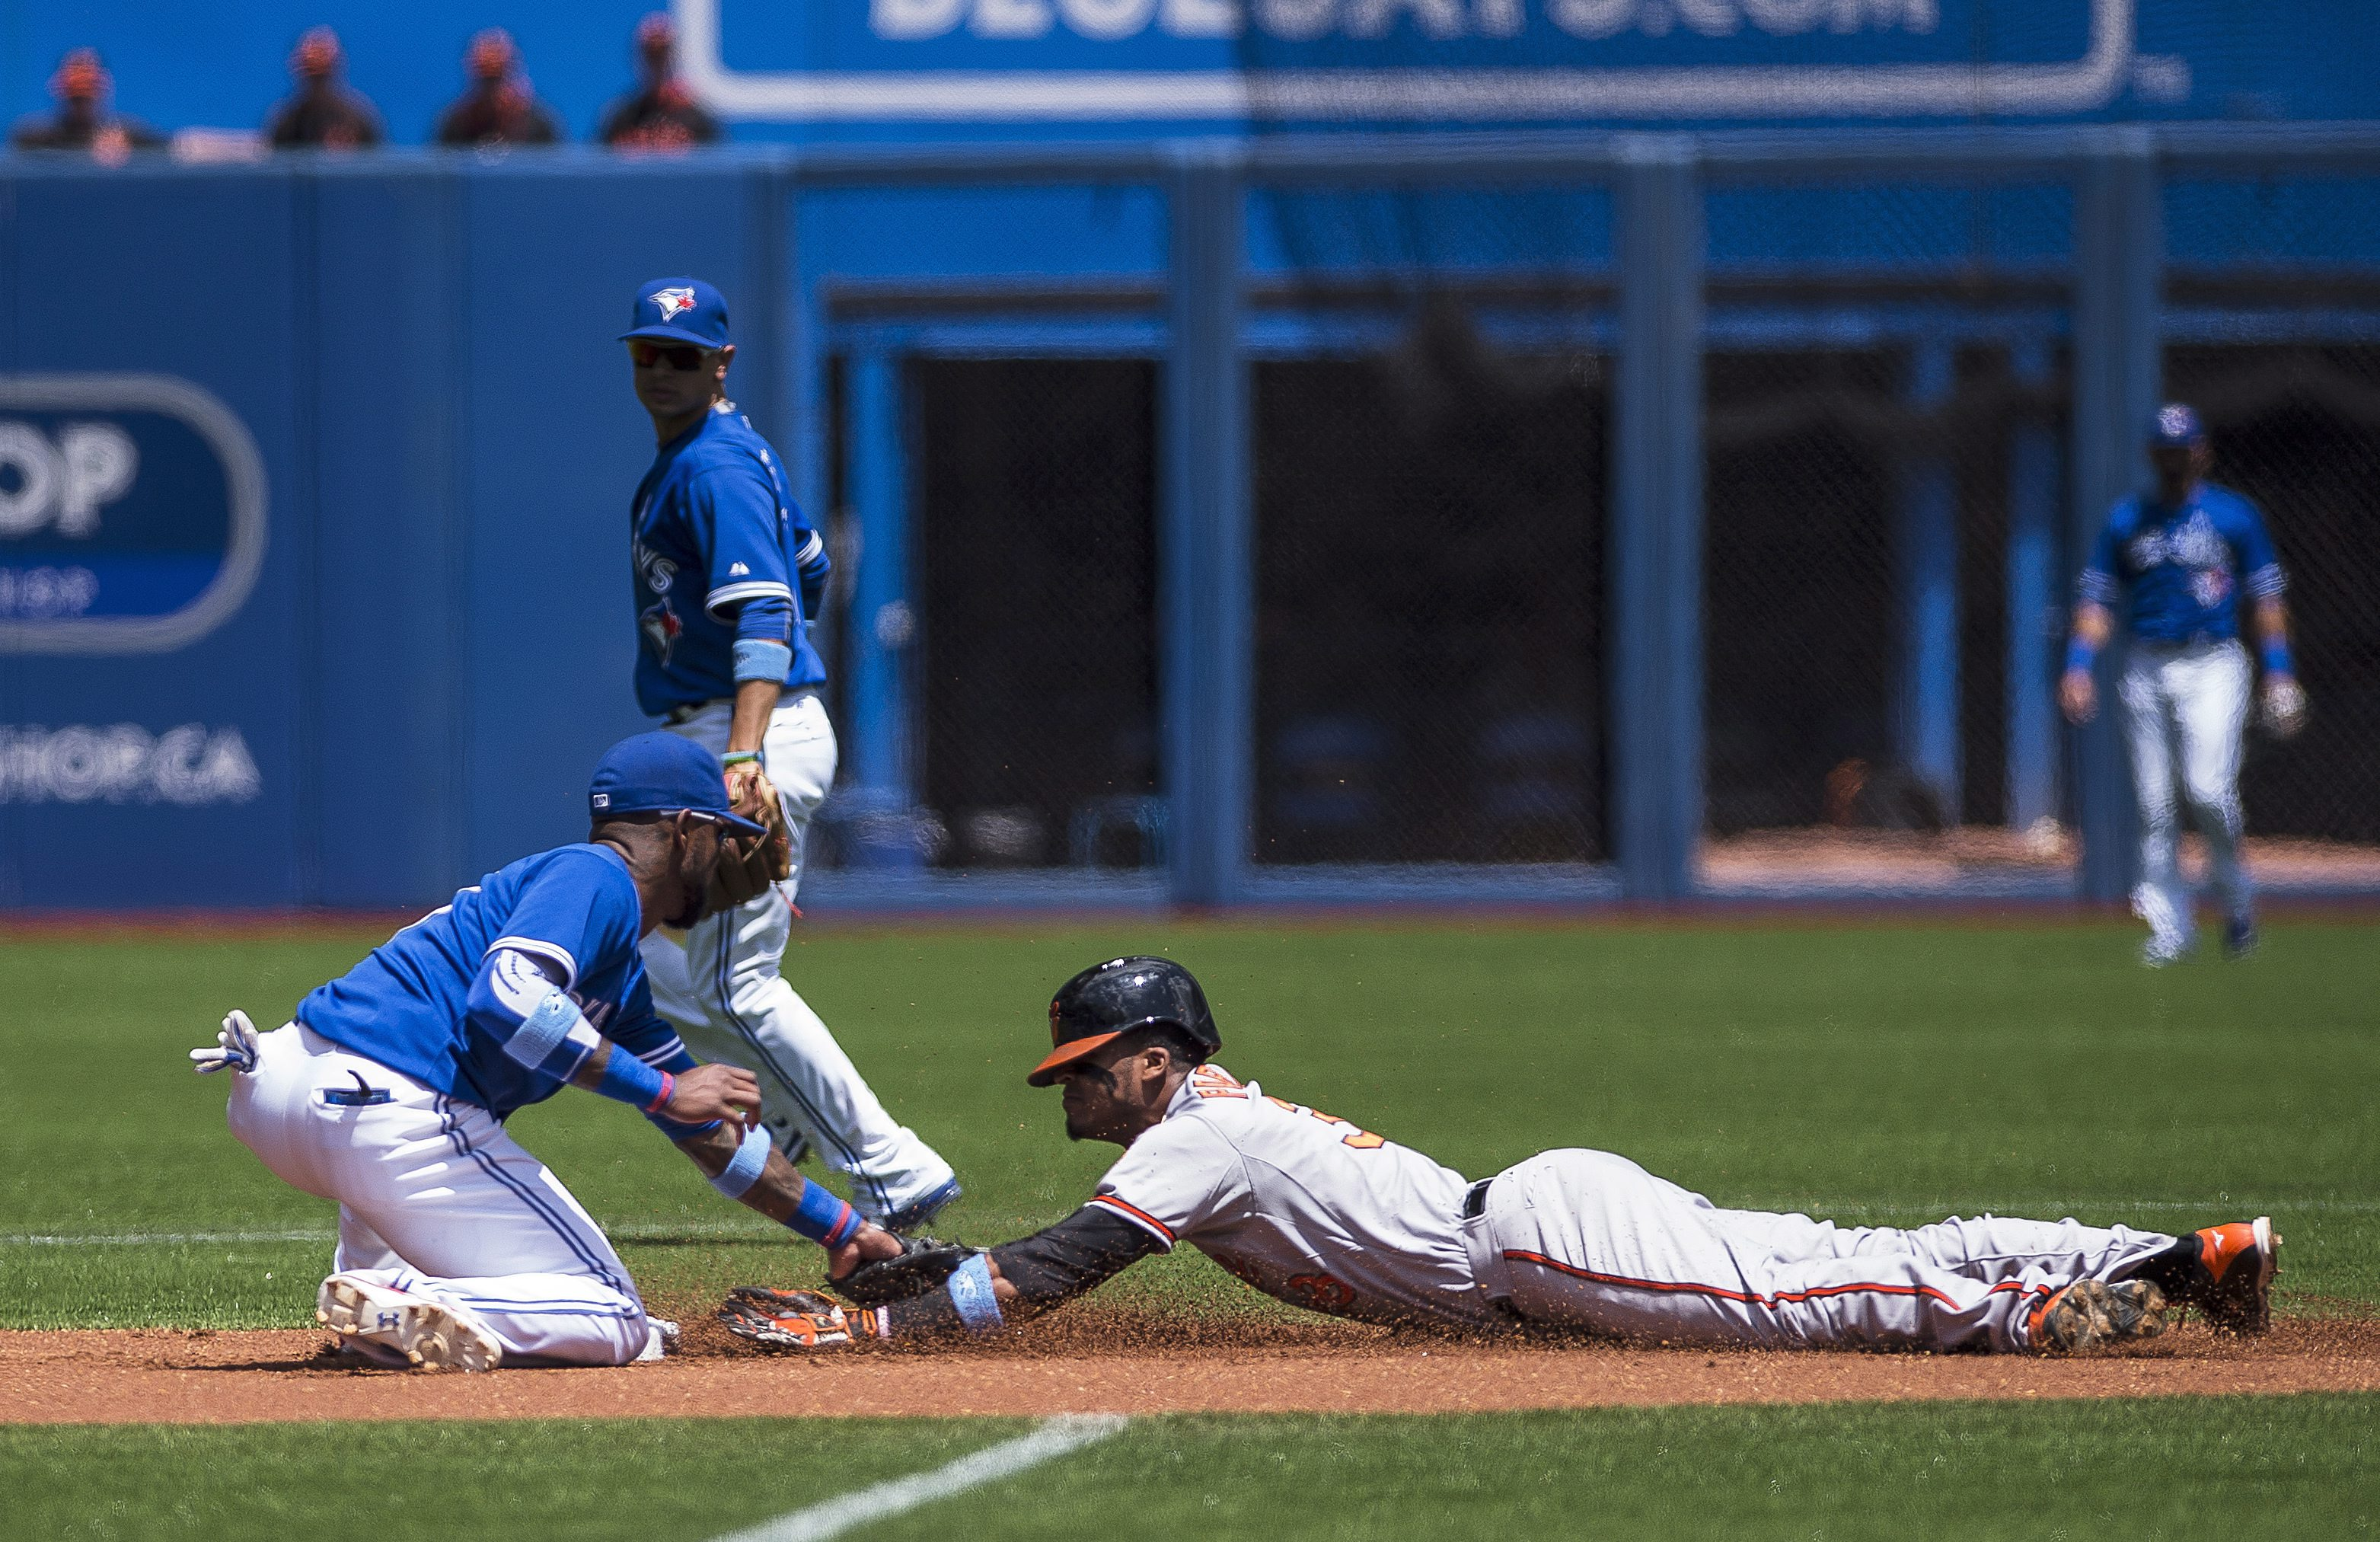 Baltimore Orioles Jimmy Paredes is caught stealing second base by Toronto Blue Jays shortstop Jose Reyes as Jays' Ryan Goins looks on during the first inning of a baseball game in Toronto, Sunday, June 21, 2015. (Aaron Vincent Elkaim/The Canadian Press vi